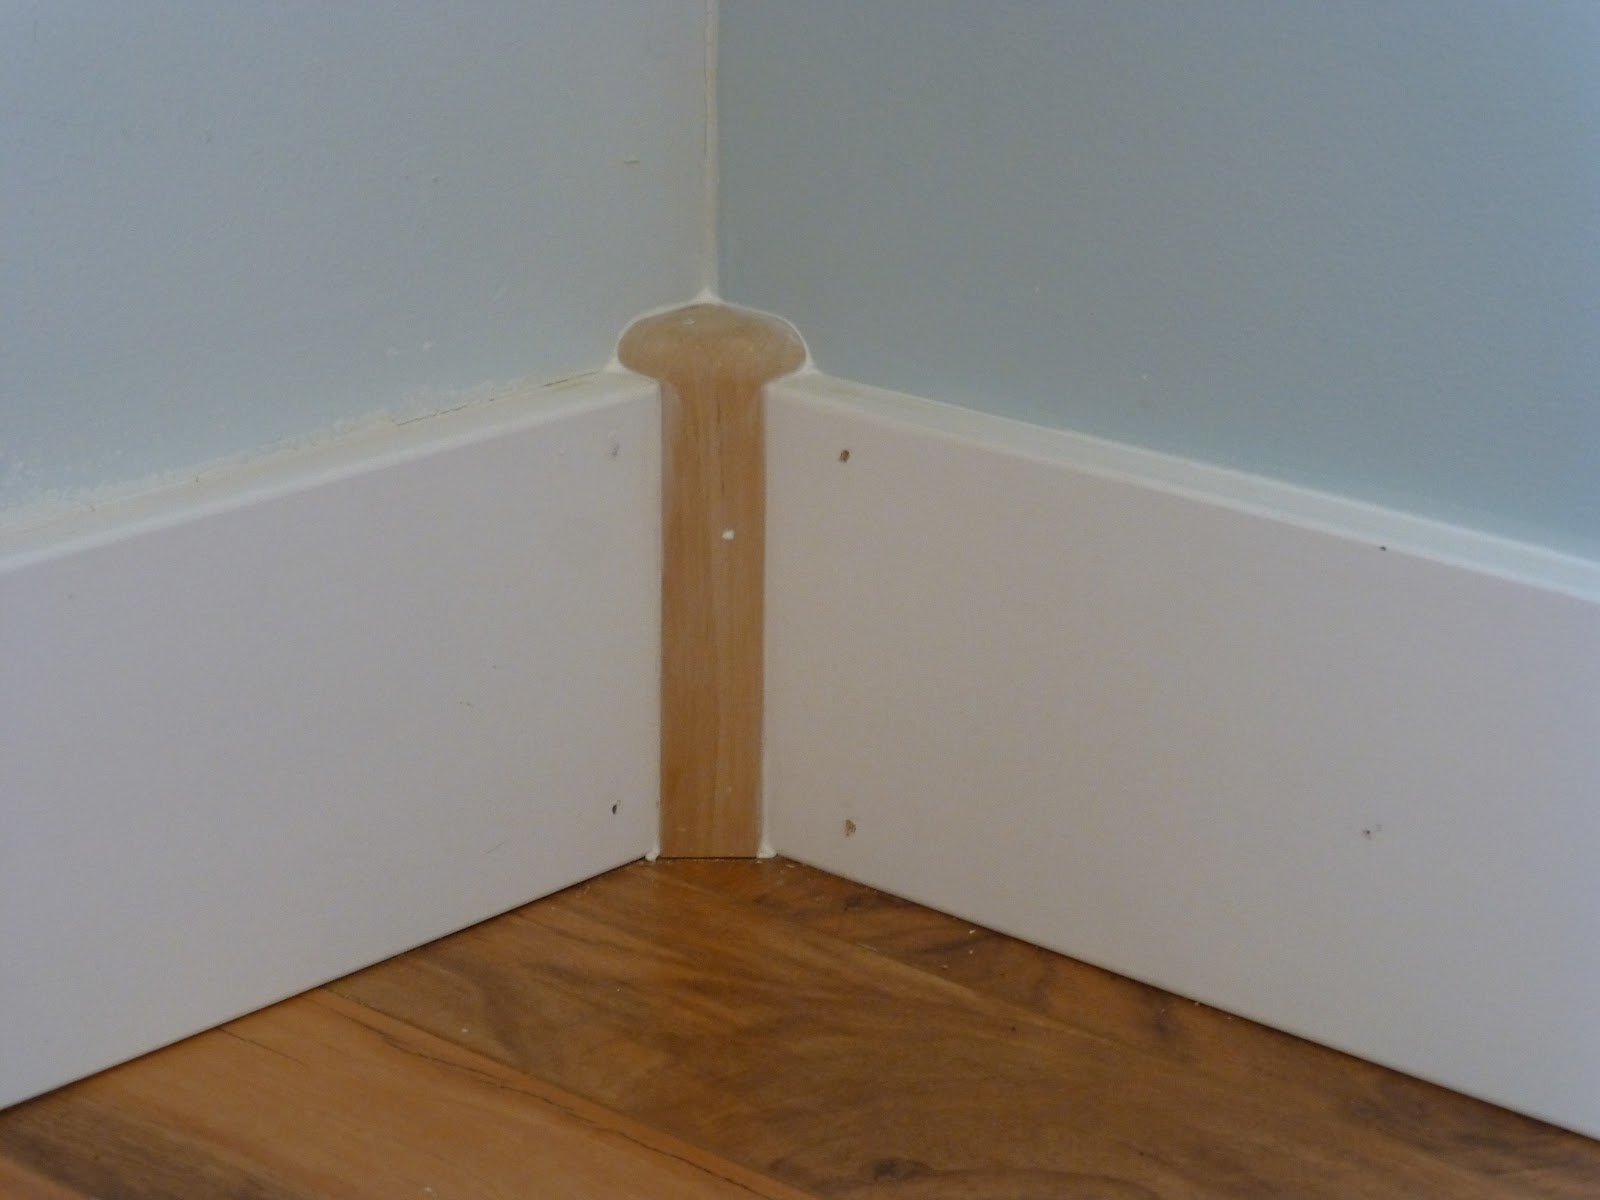 Repair Ceiling Drywall Drywall Crack How To Fix It Just